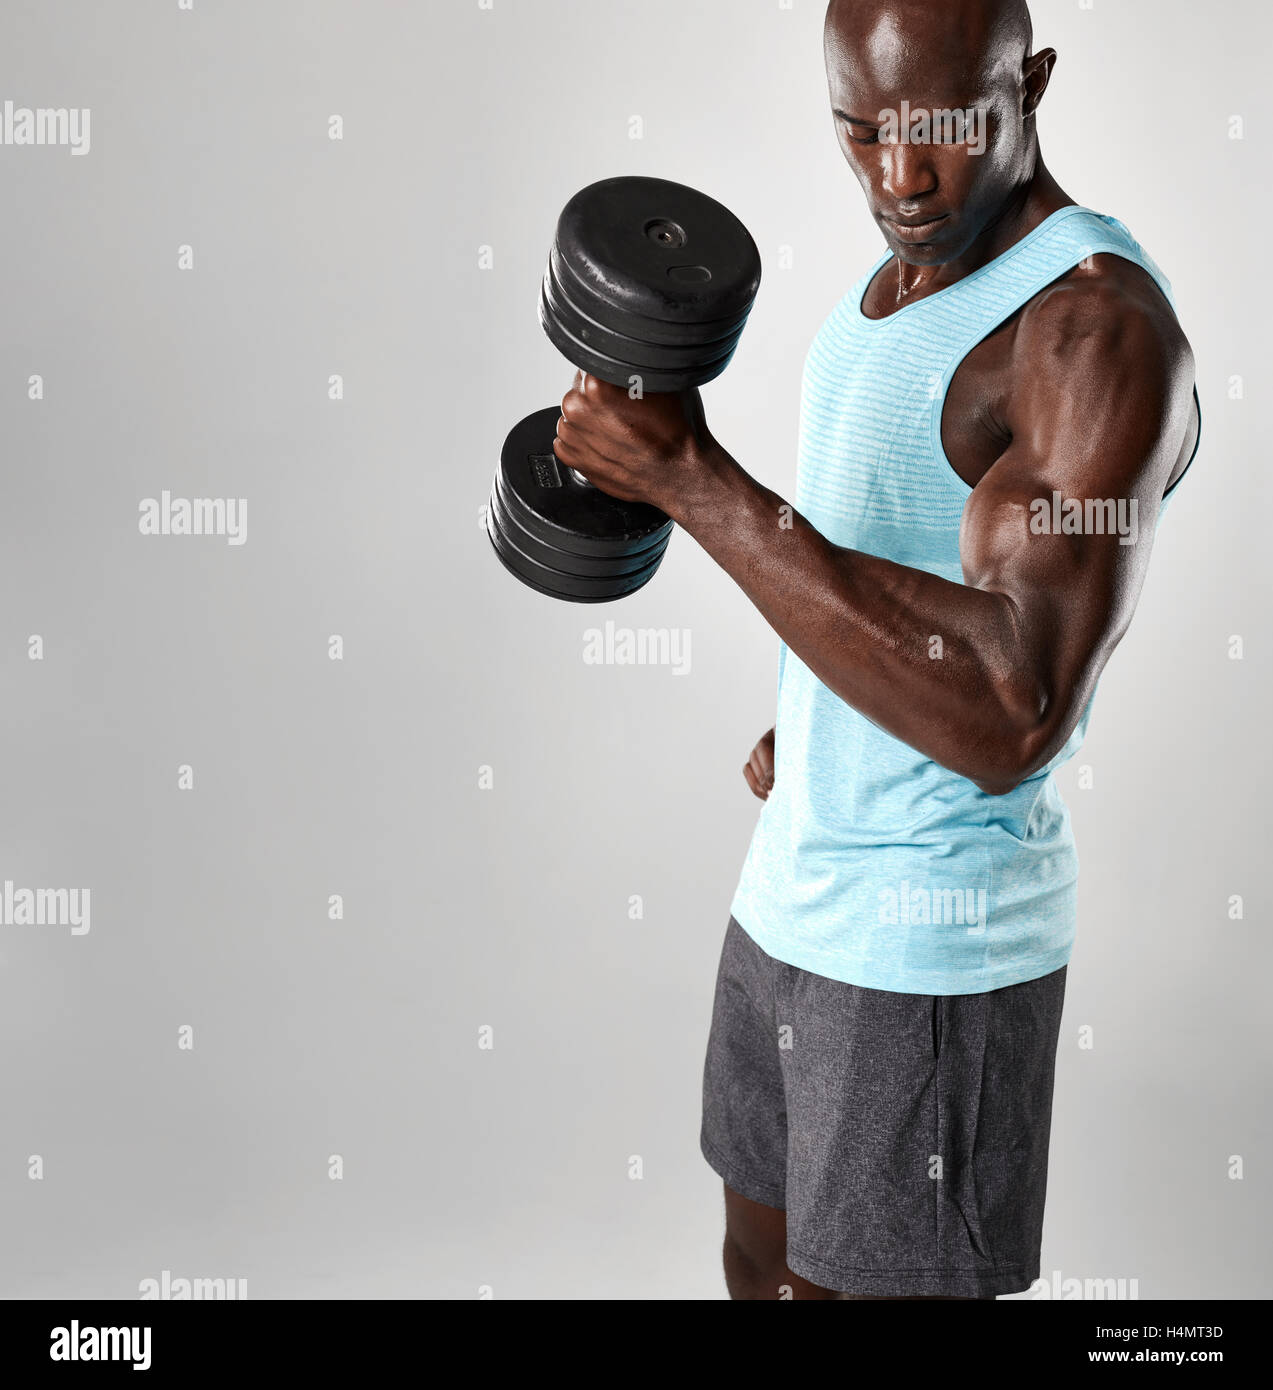 Fit young african man exercising with dumbbells against grey background. Muscular black male model lifting heavy - Stock Image